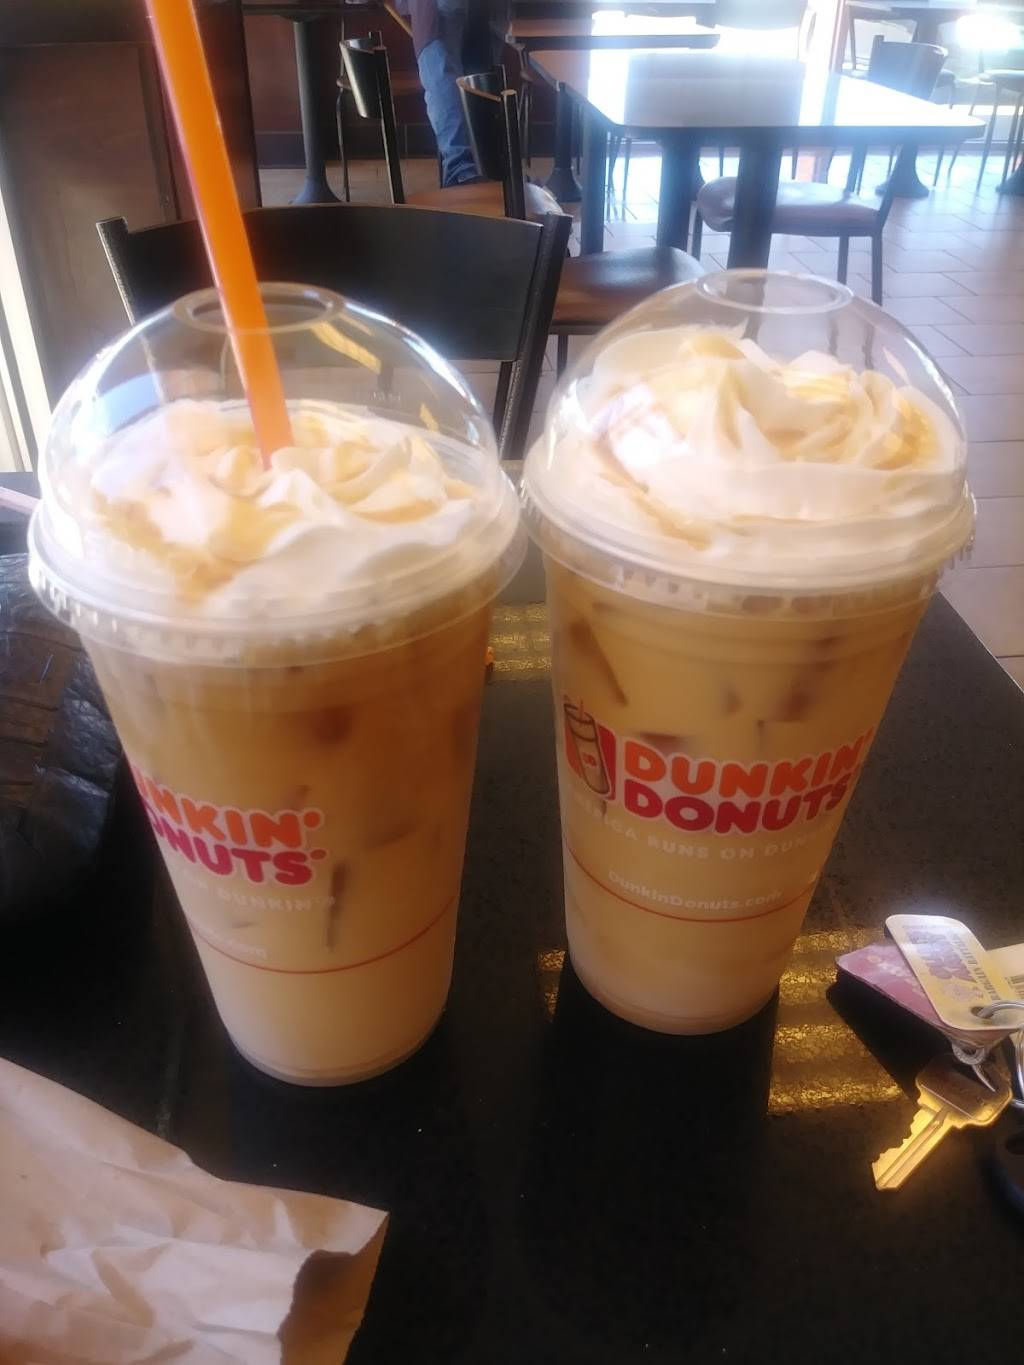 Dunkin   cafe   151 W Main St, Norristown, PA 19401, USA   6102750350 OR +1 610-275-0350